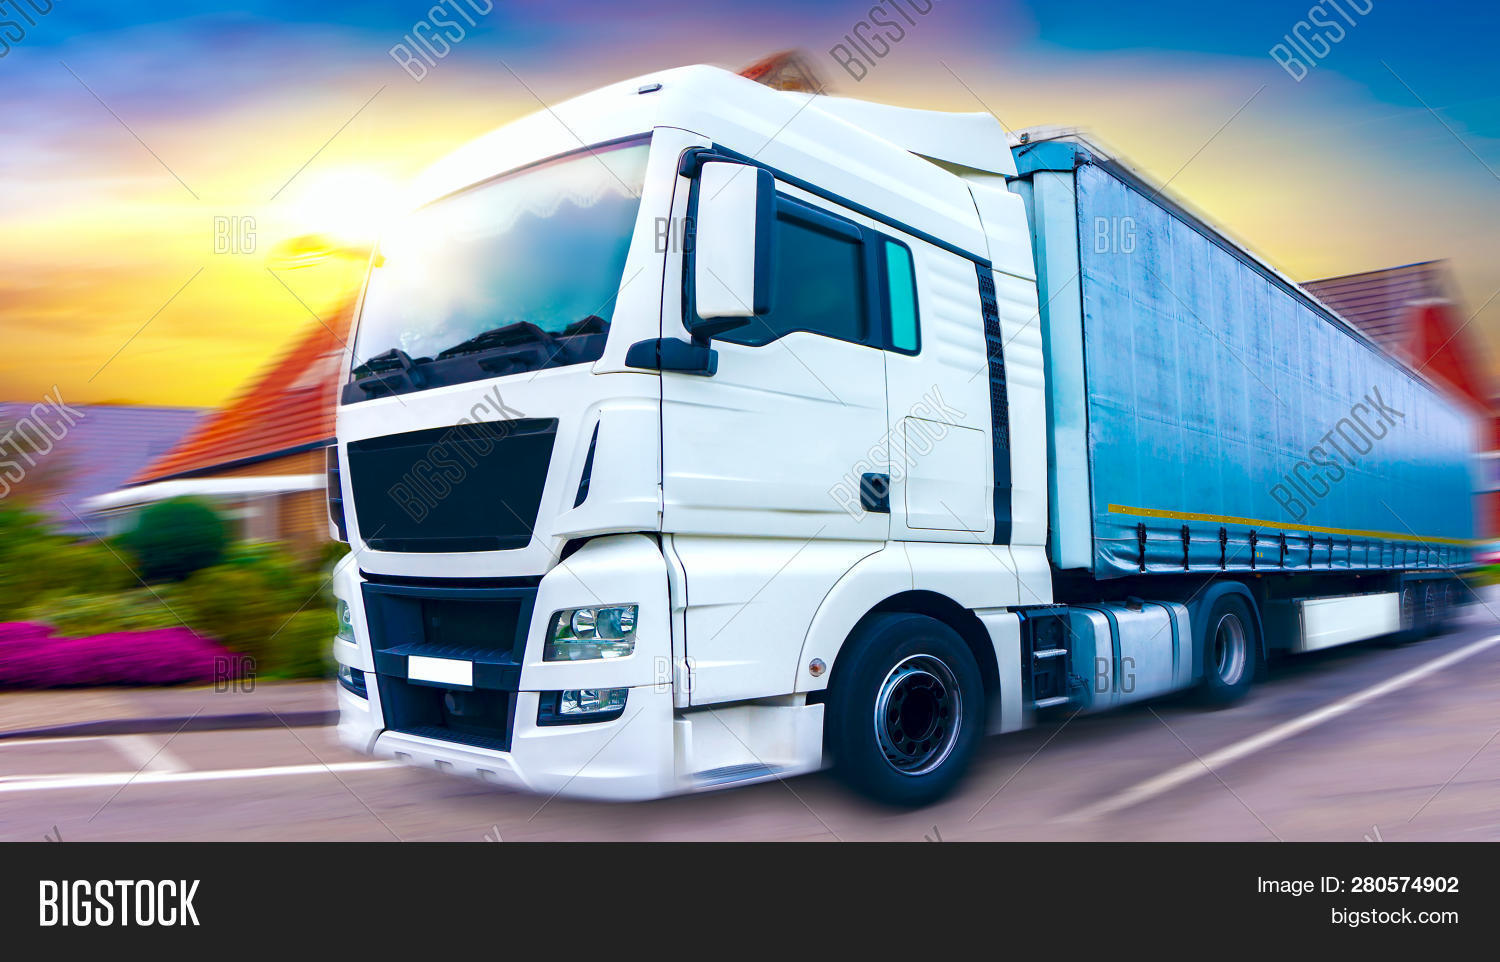 abstract,asphalt,automobile,big,blur,business,busy,car,cargo,clouds,delivery,driving,fast,fingers,freight,fuel,heavy,high,highway,industry,landscape,line,logistics,long,lorry,middle,motion,moving,perspective,road,shipping,sky,speed,stock,storage,supply,traffic,trailer,transport,transportation,truck,trucking,vehicle,view,way,white